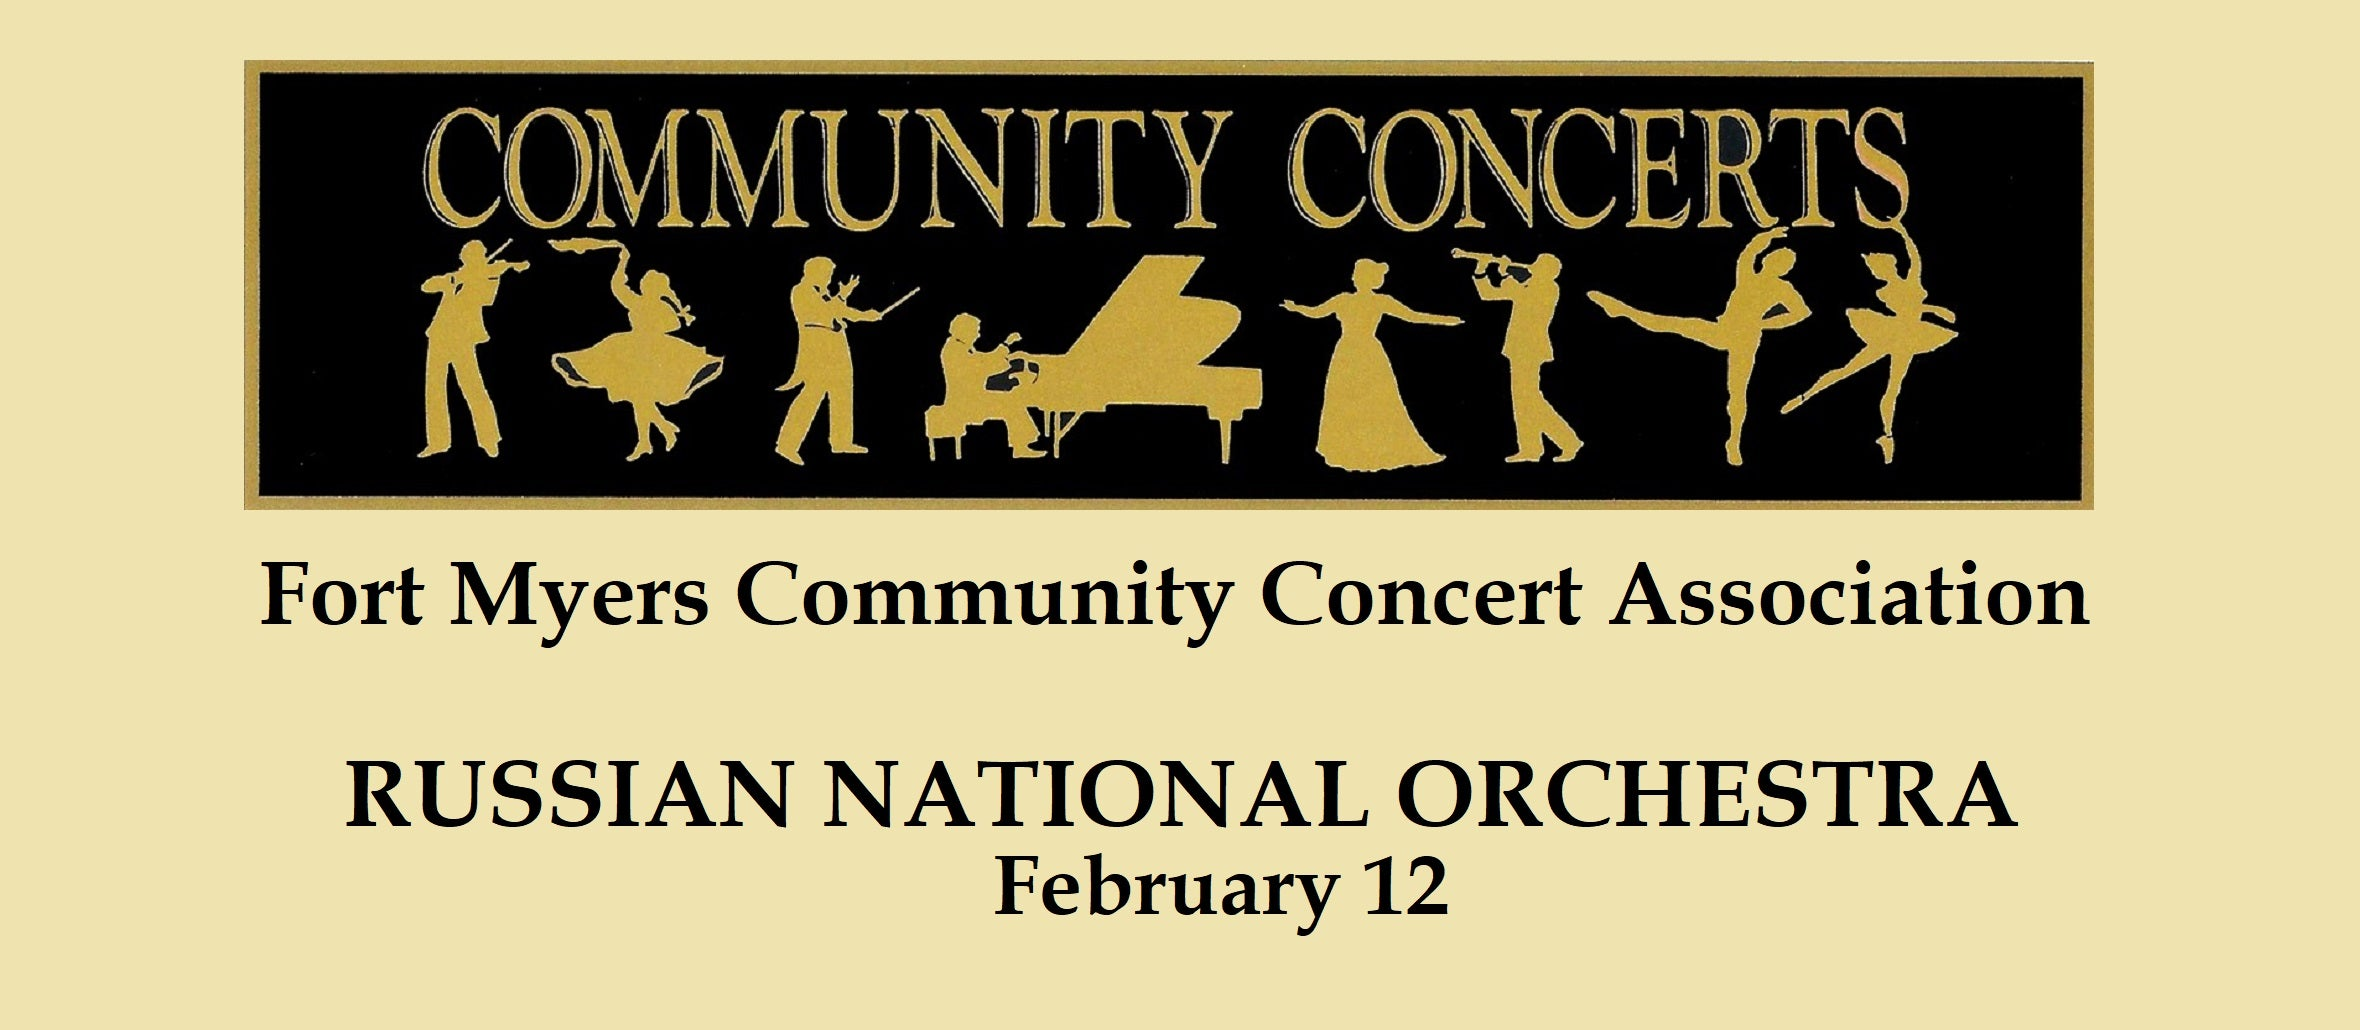 Fort Myers Community Concert: Russian National Orchestra